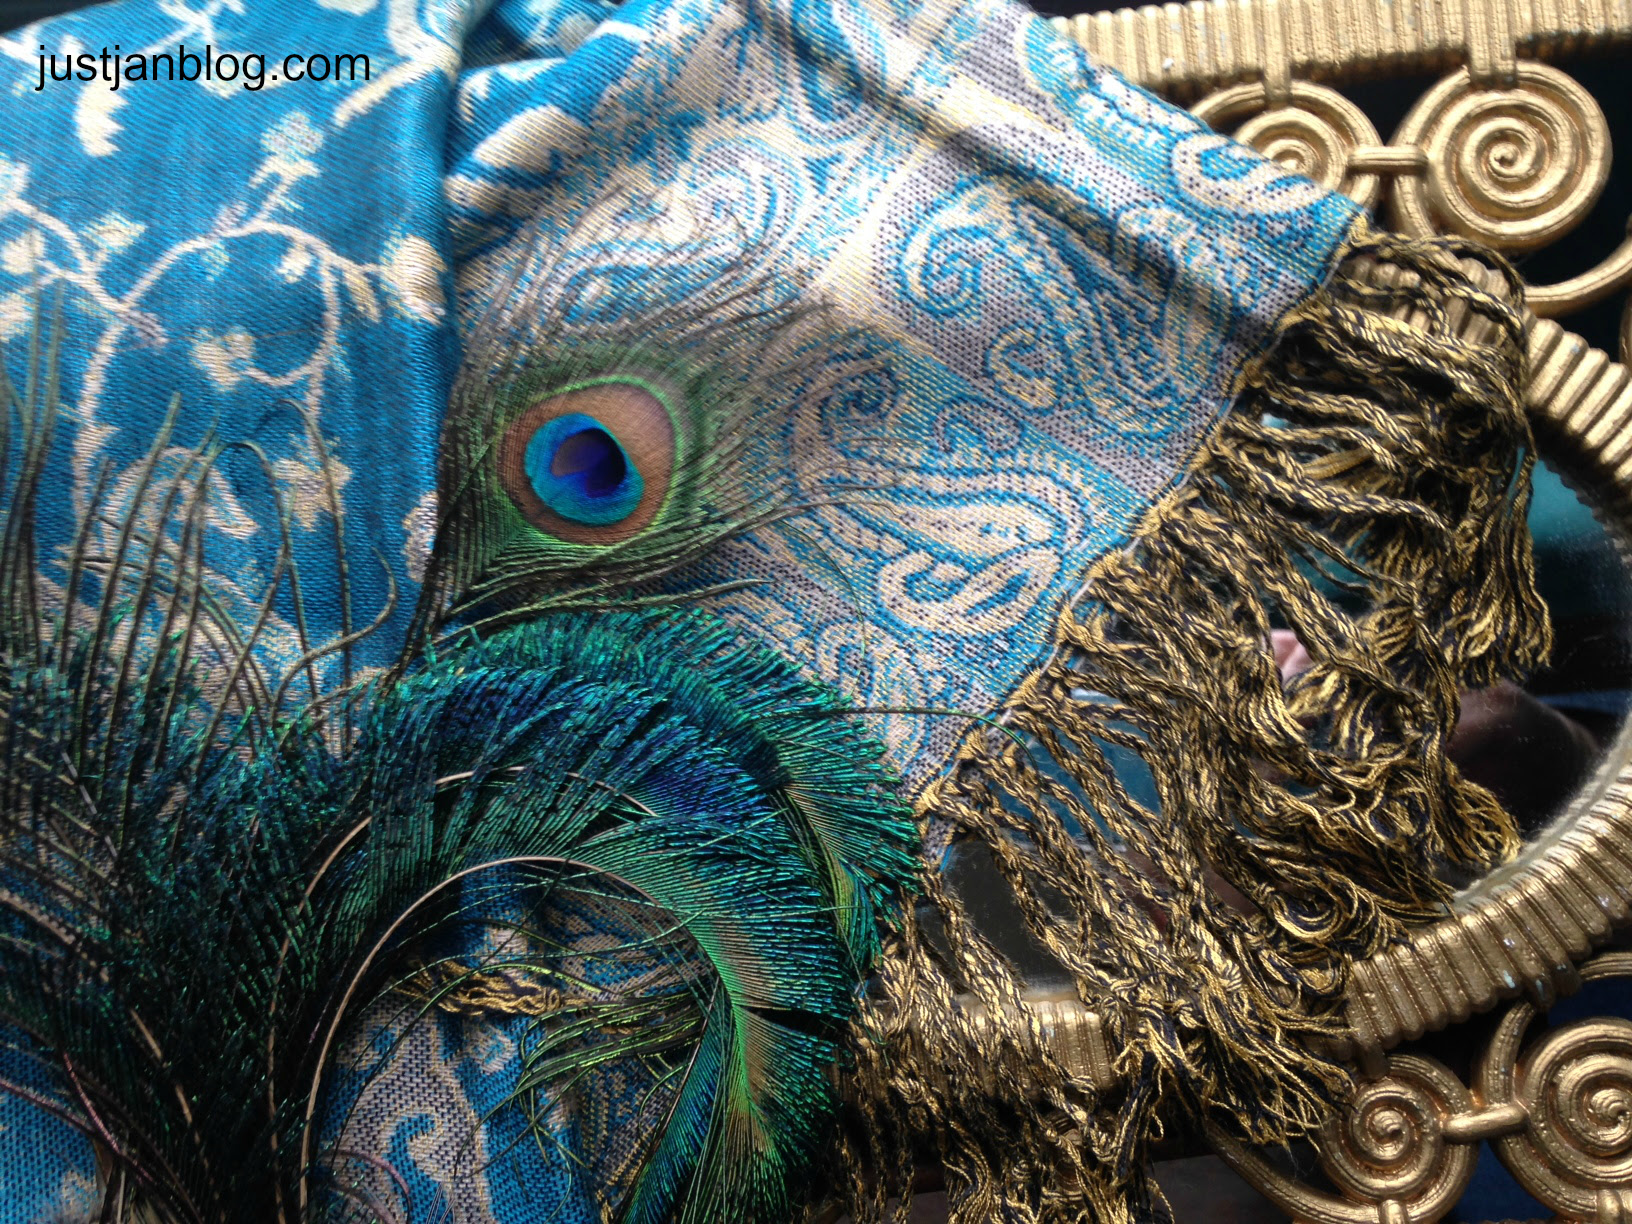 turquoise shawl with peacock feathers